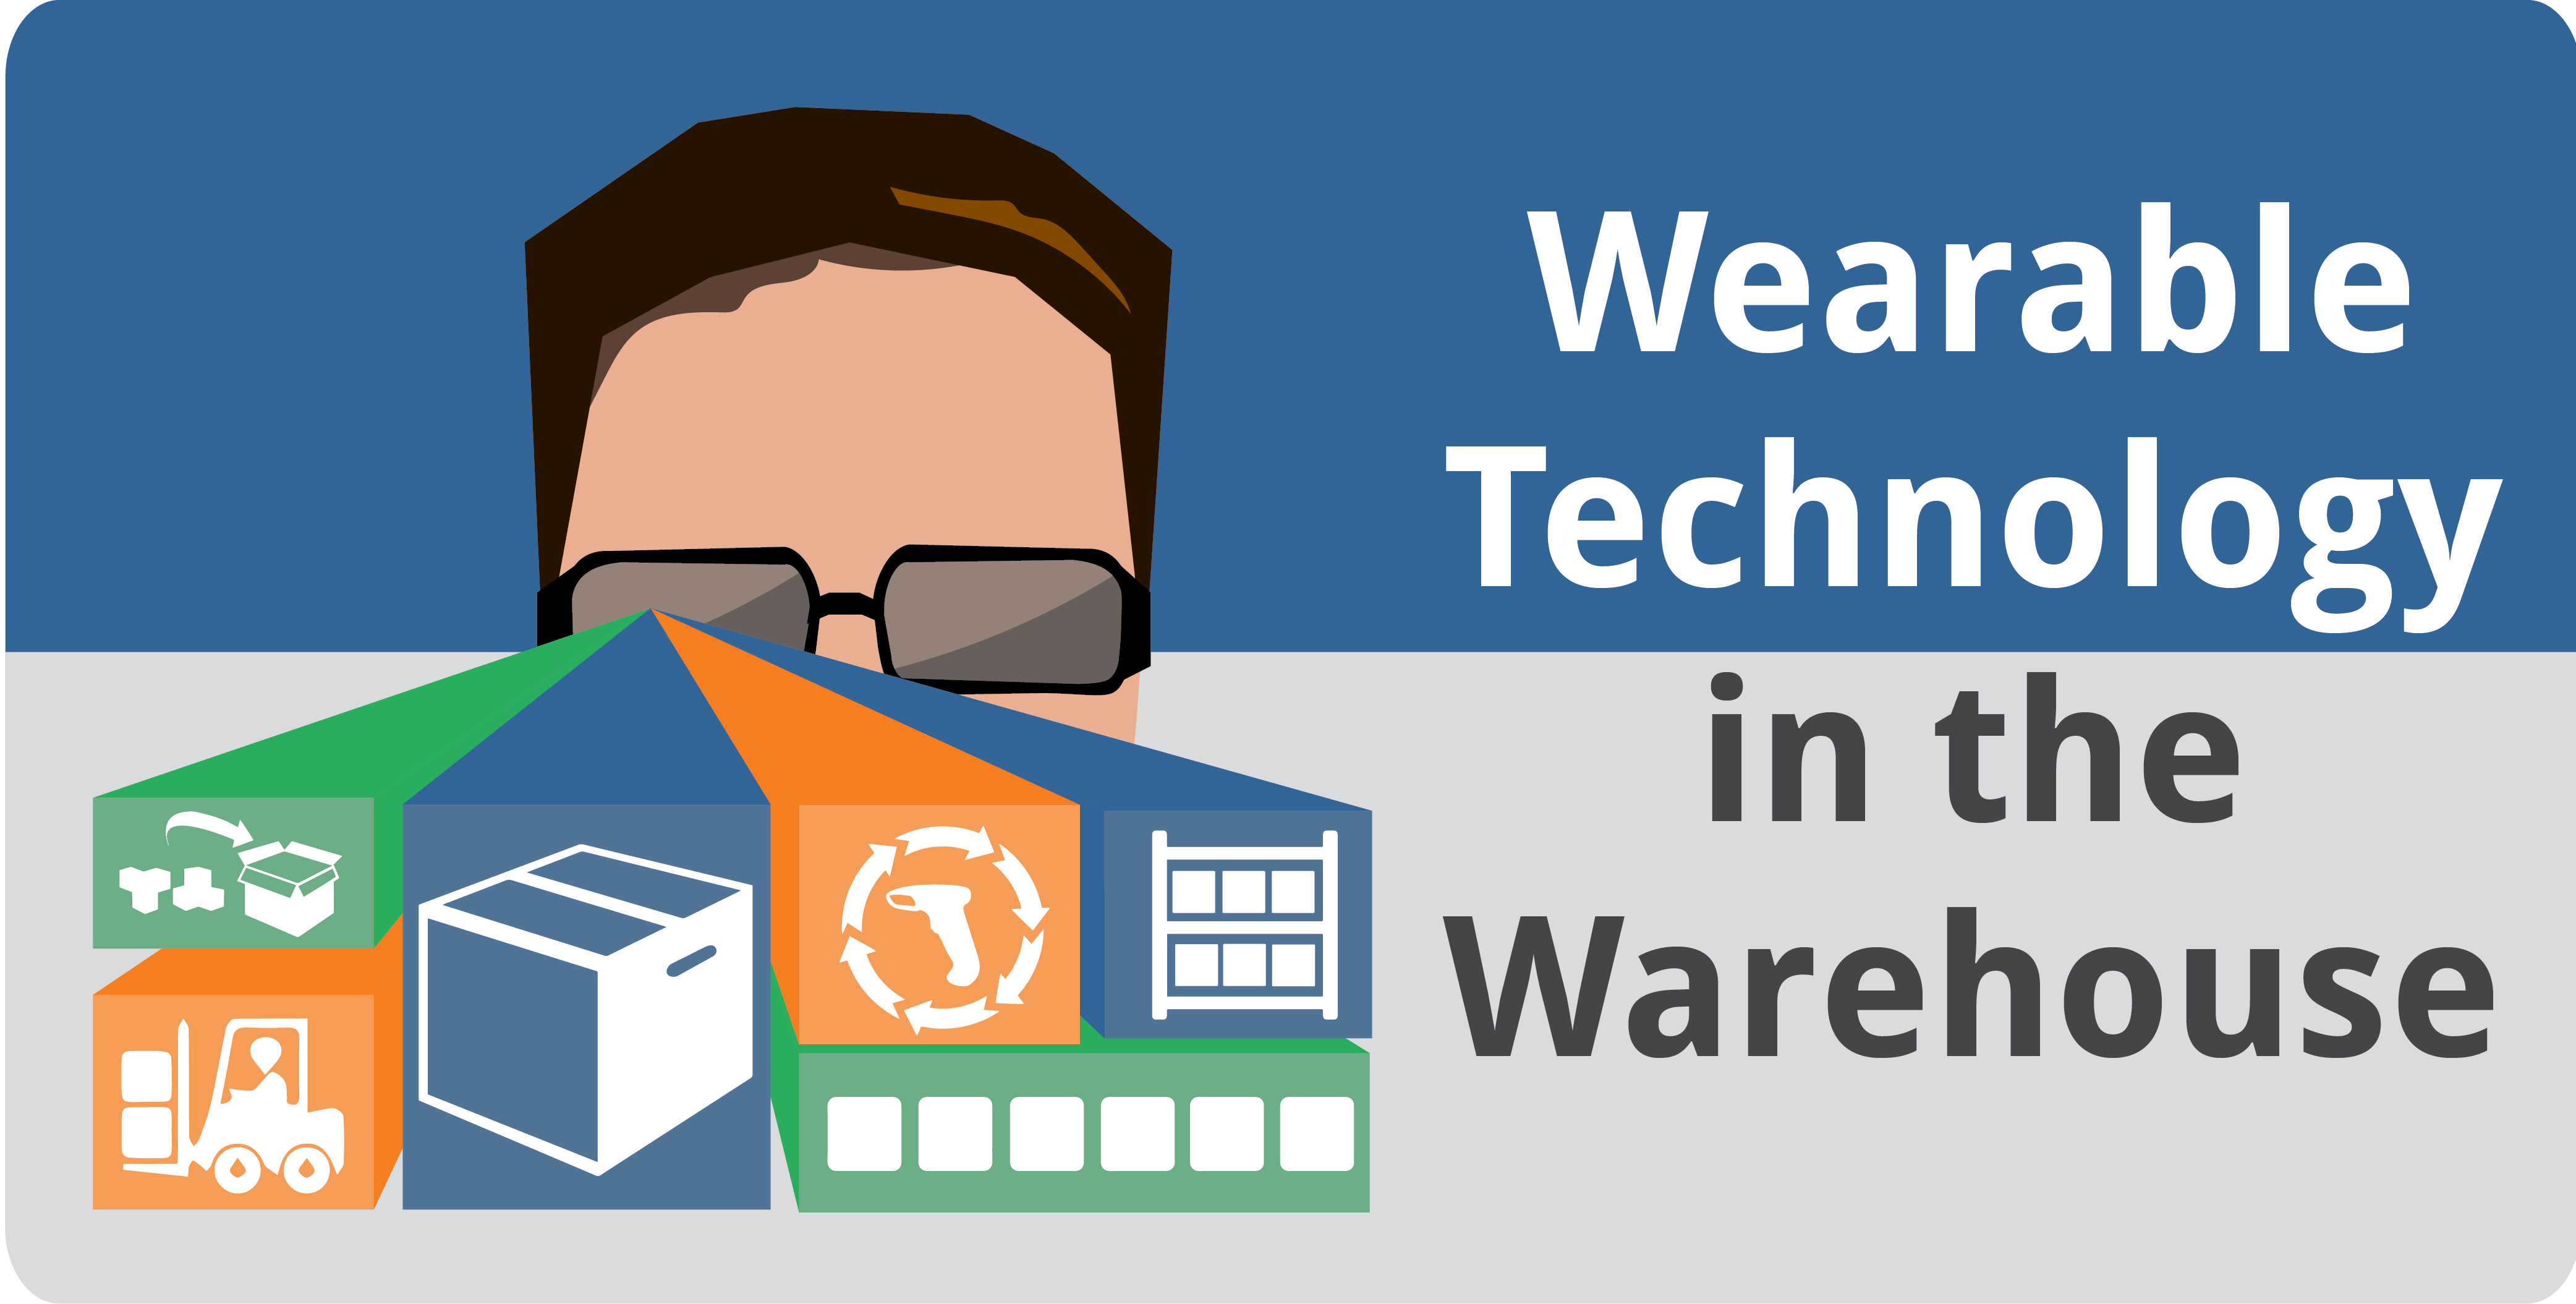 Wearable Technology in the Warehouse - Featured Image